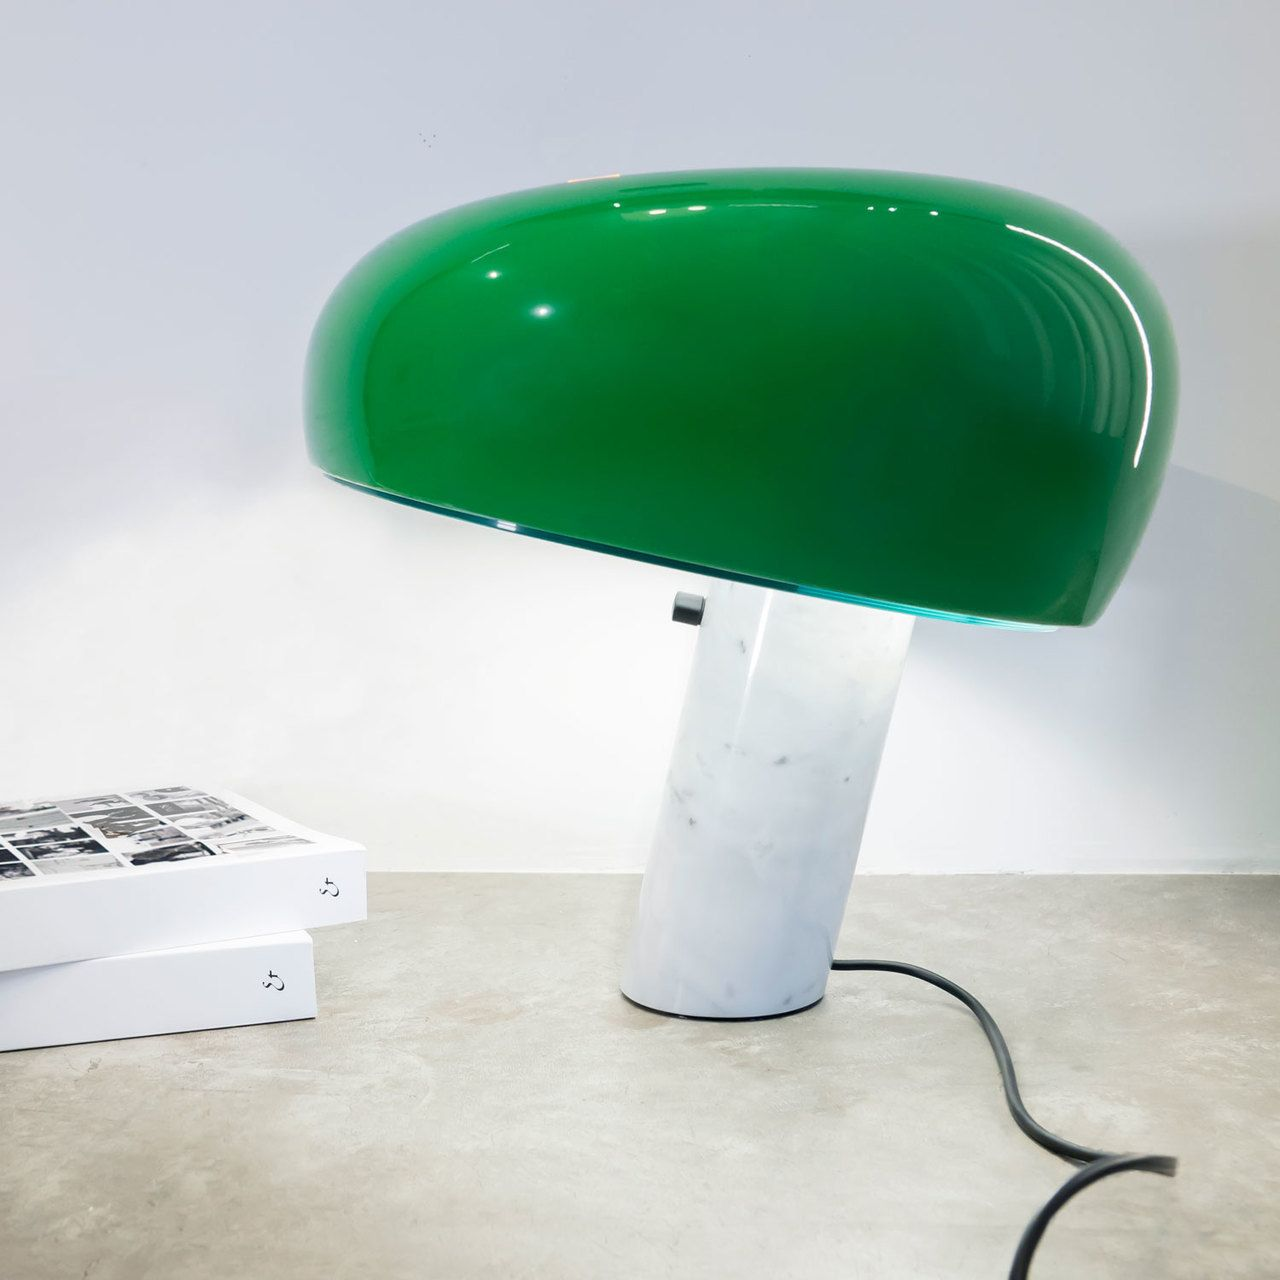 Snoopy Green Marble Base Table Lamp Green Table Lamp Lamp Green Lamp